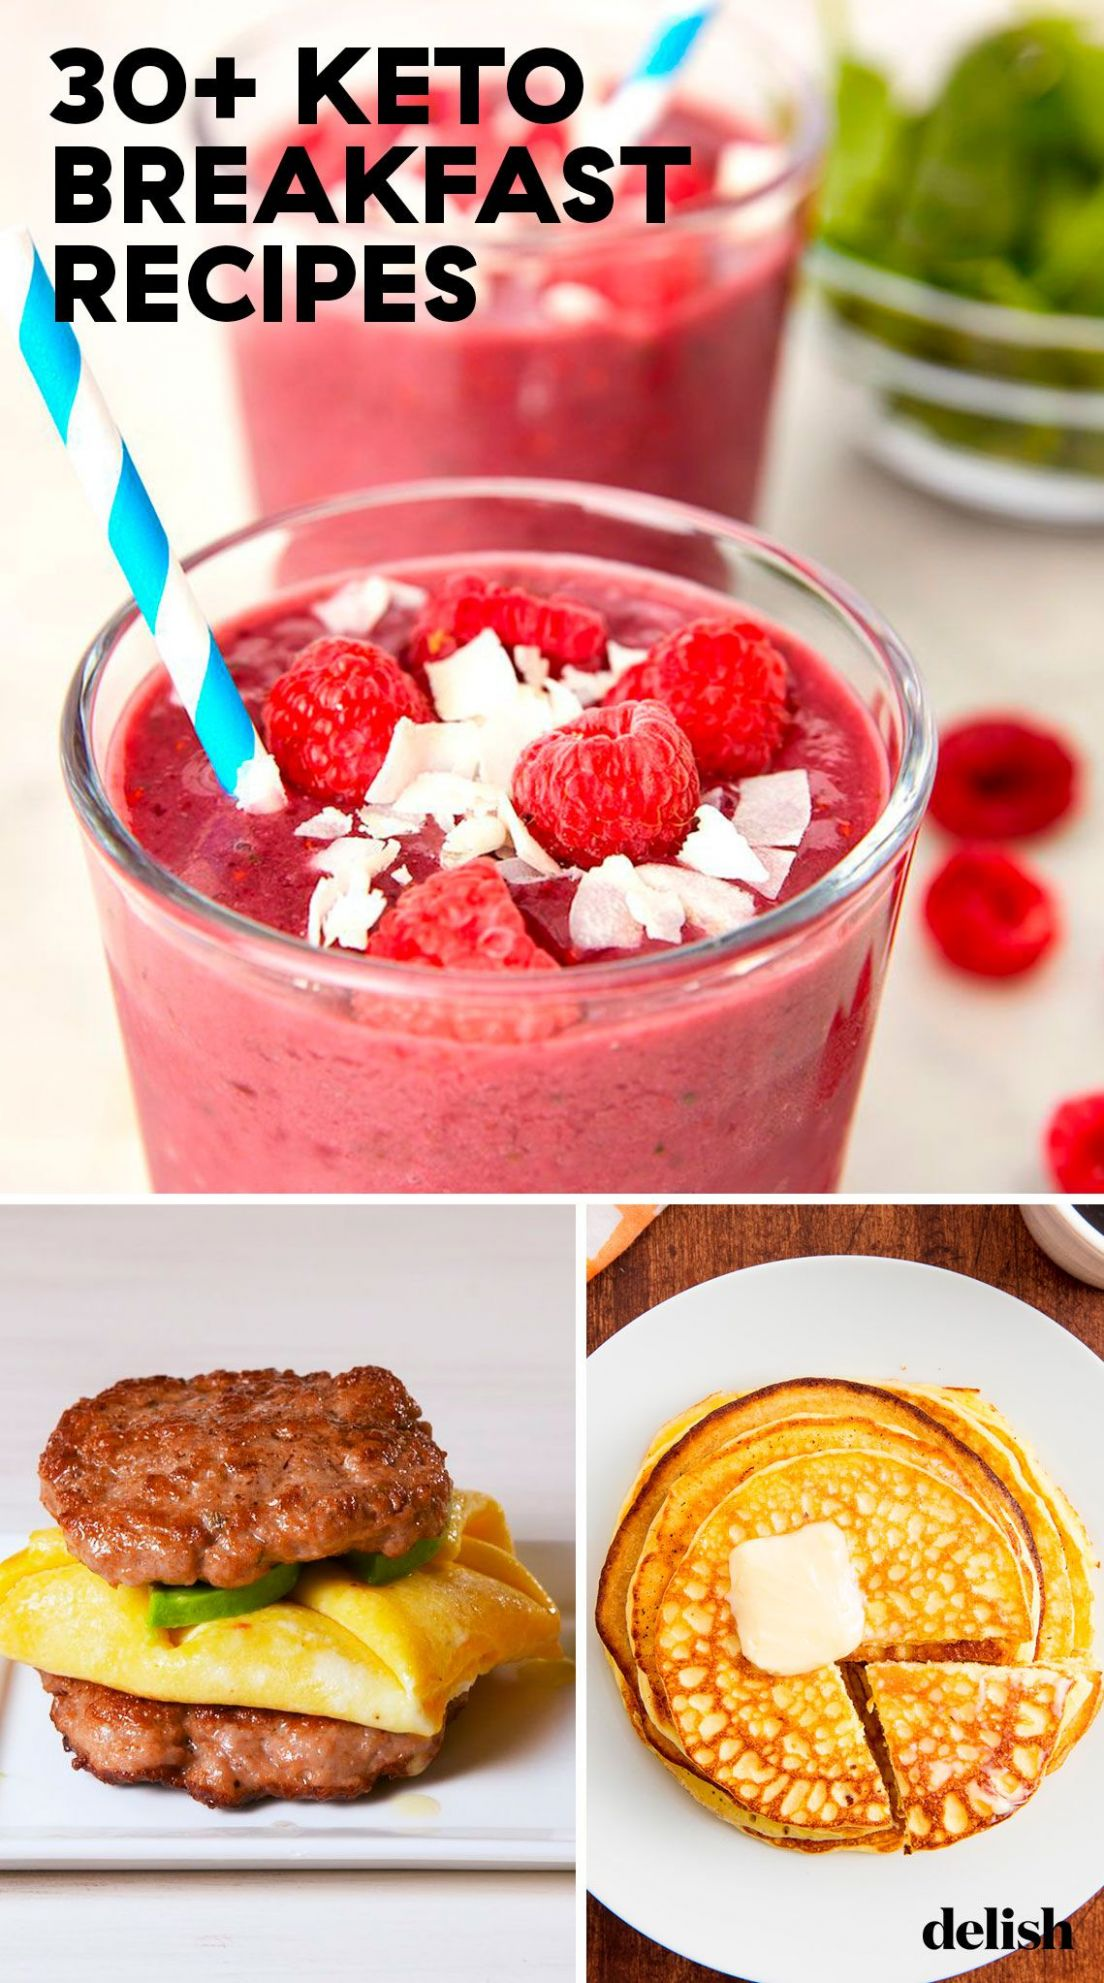 9+ Easy Keto Diet Breakfast Ideas - Best Recipes for Ketogenic ..